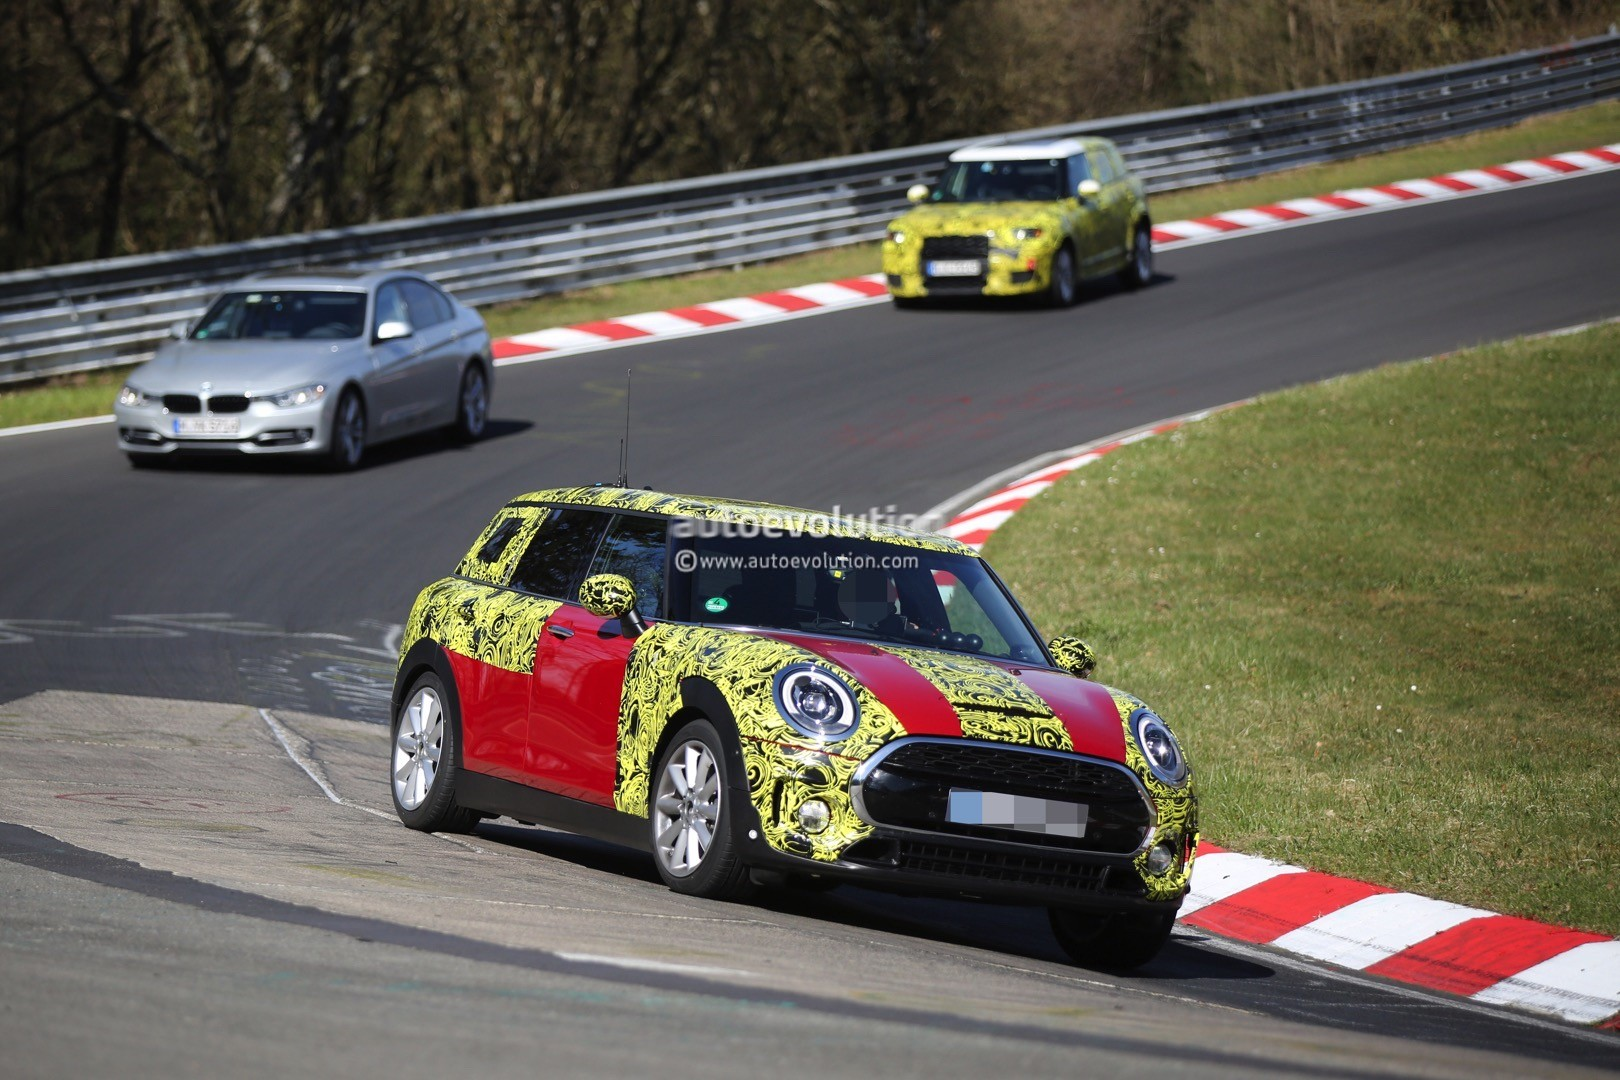 2015 - [Mini] Mini IV Clubman [F54] - Page 13 2016-mini-cooper-s-clubman-shows-new-details-on-the-nurburgring_2